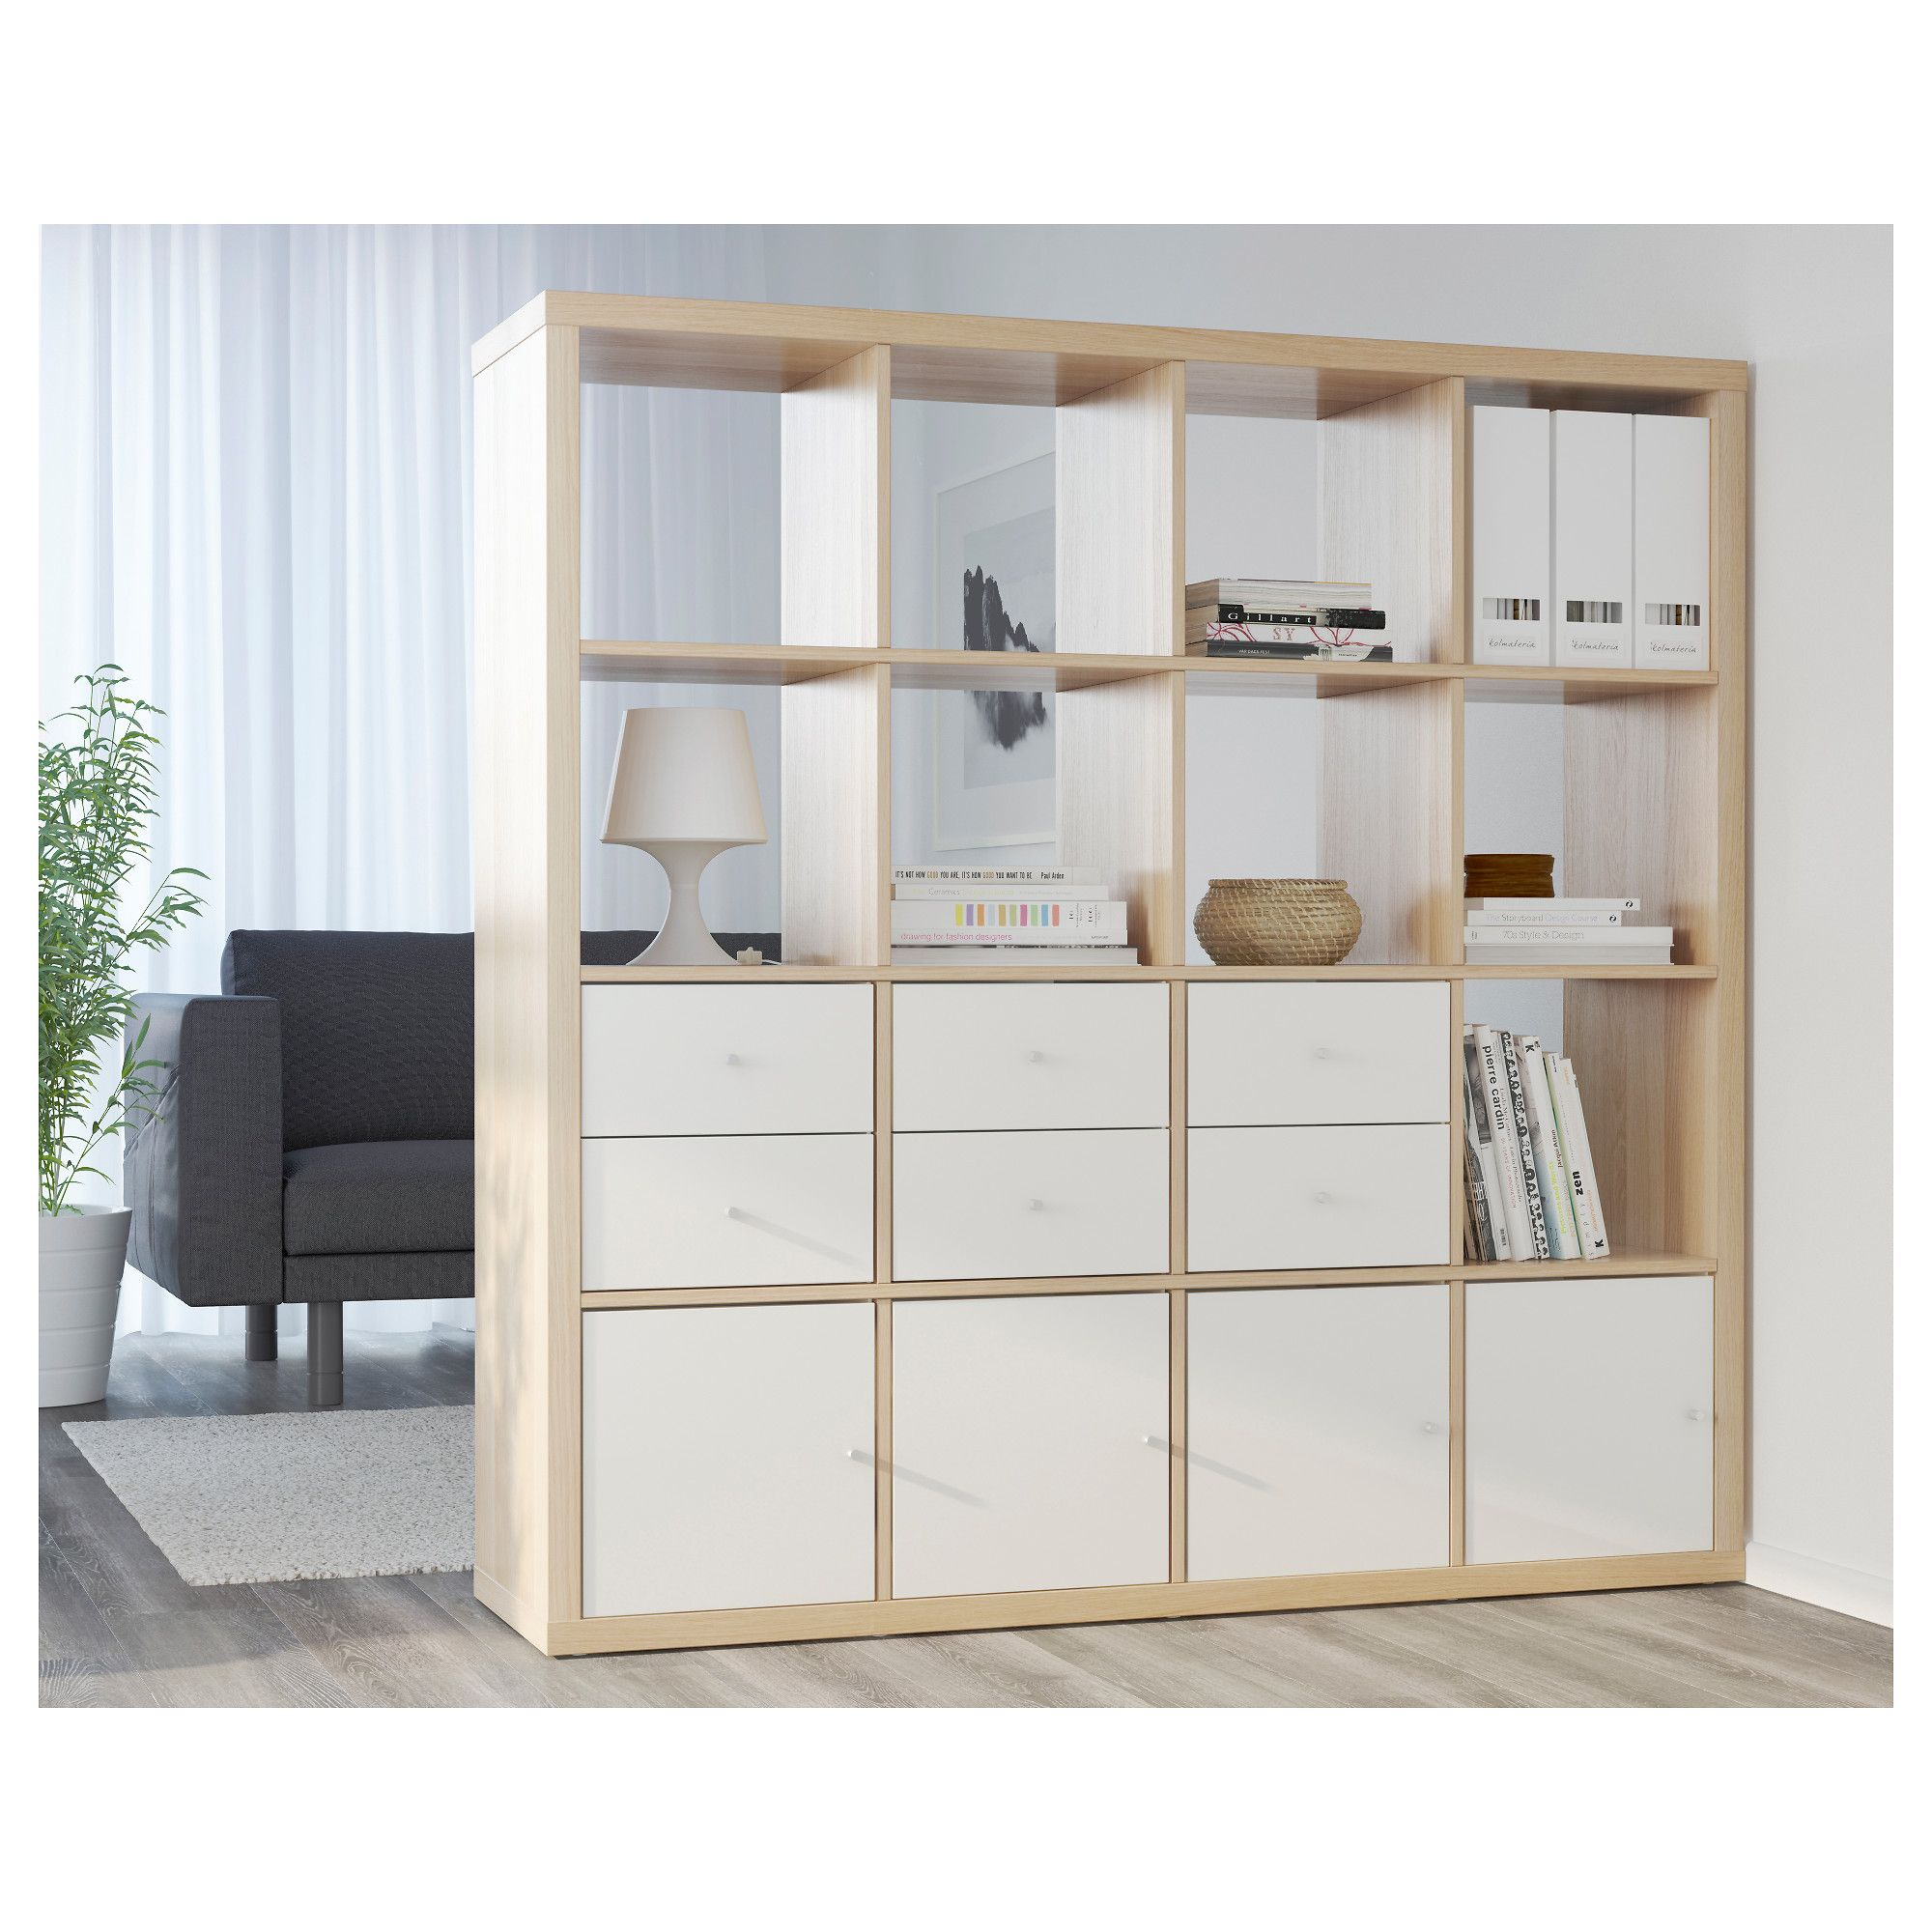 Meubles Cases Ikea Kallax Shelving Unit 4 Doors Castors White Stained Oak Effect 147